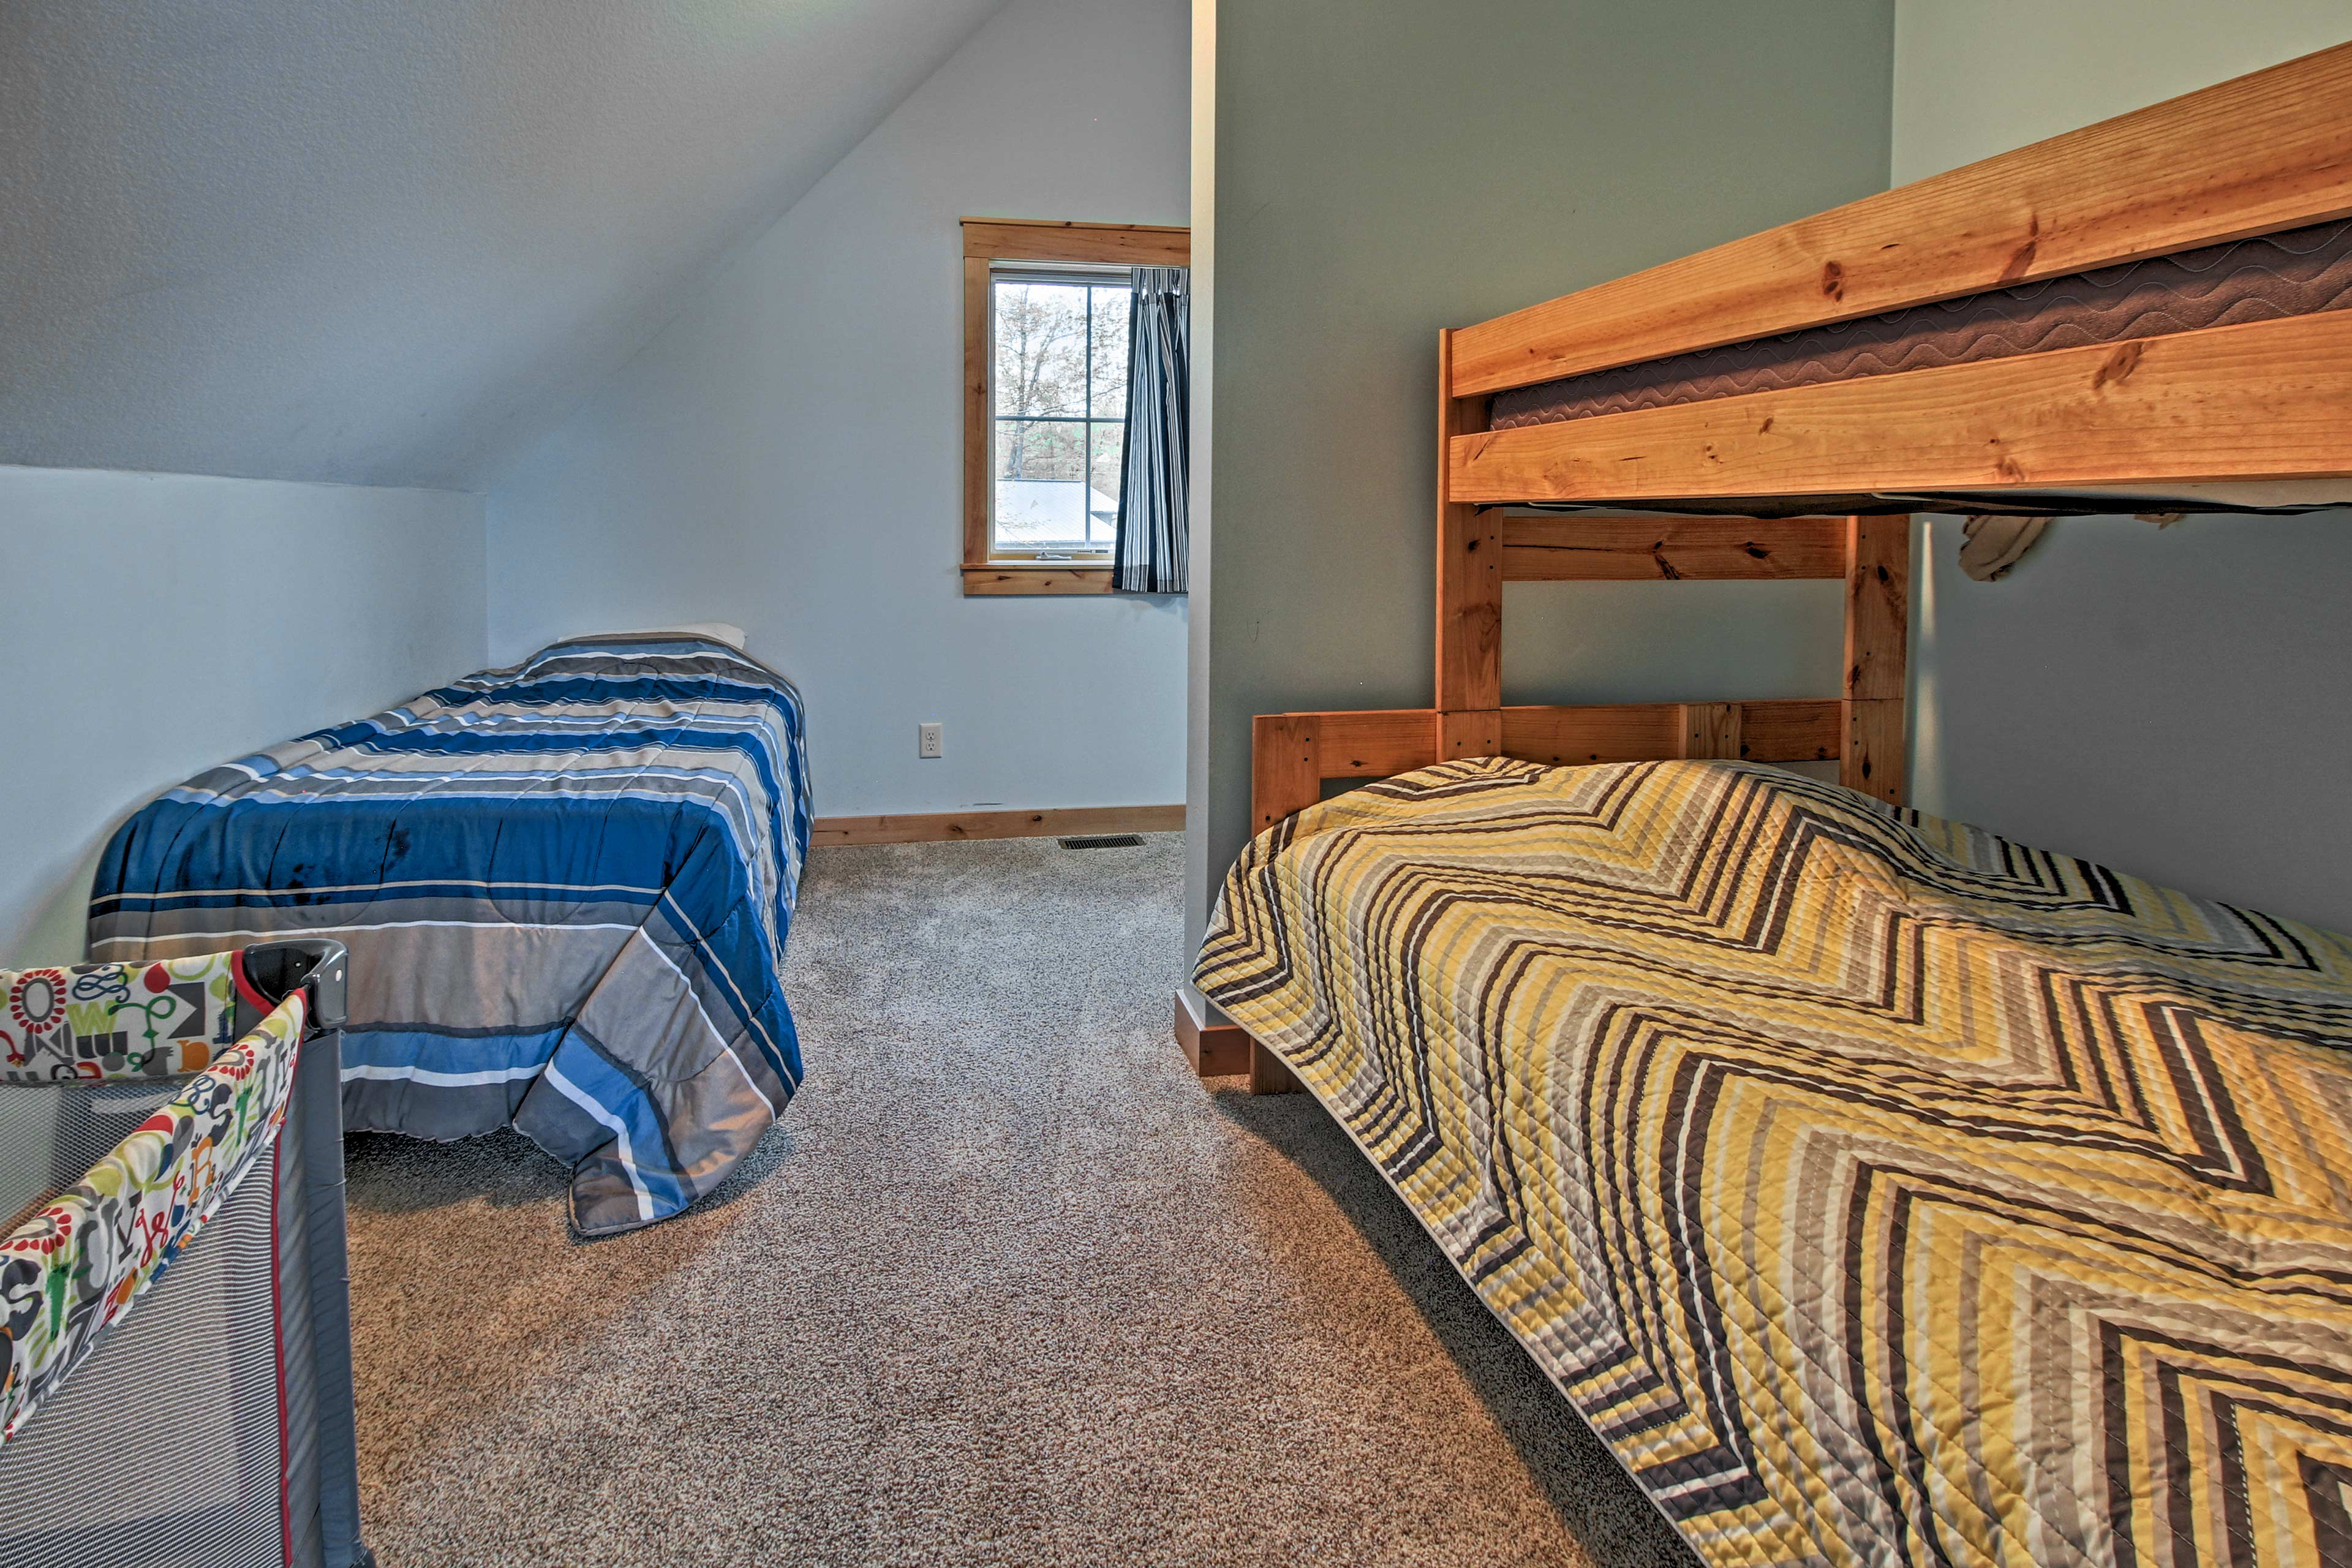 NOTE: The bunk beds are now on the floor.